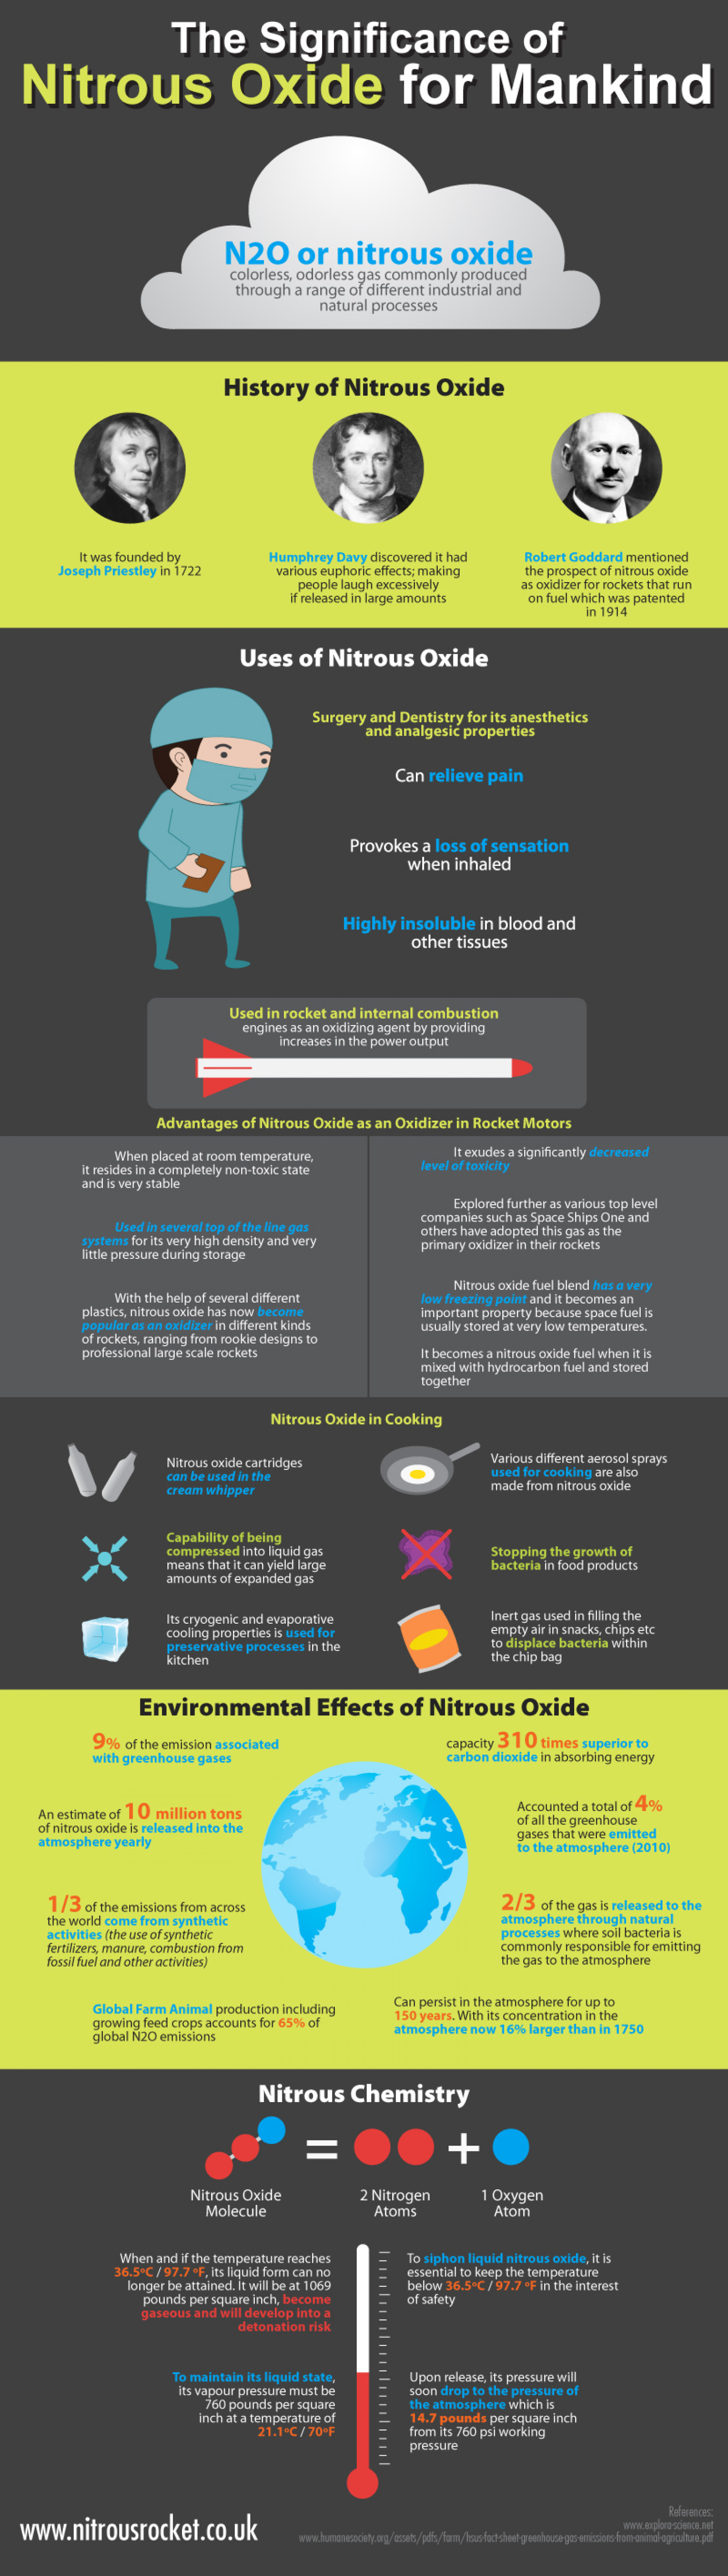 The Significance of Nitrous Oxide for Mankind Infographic